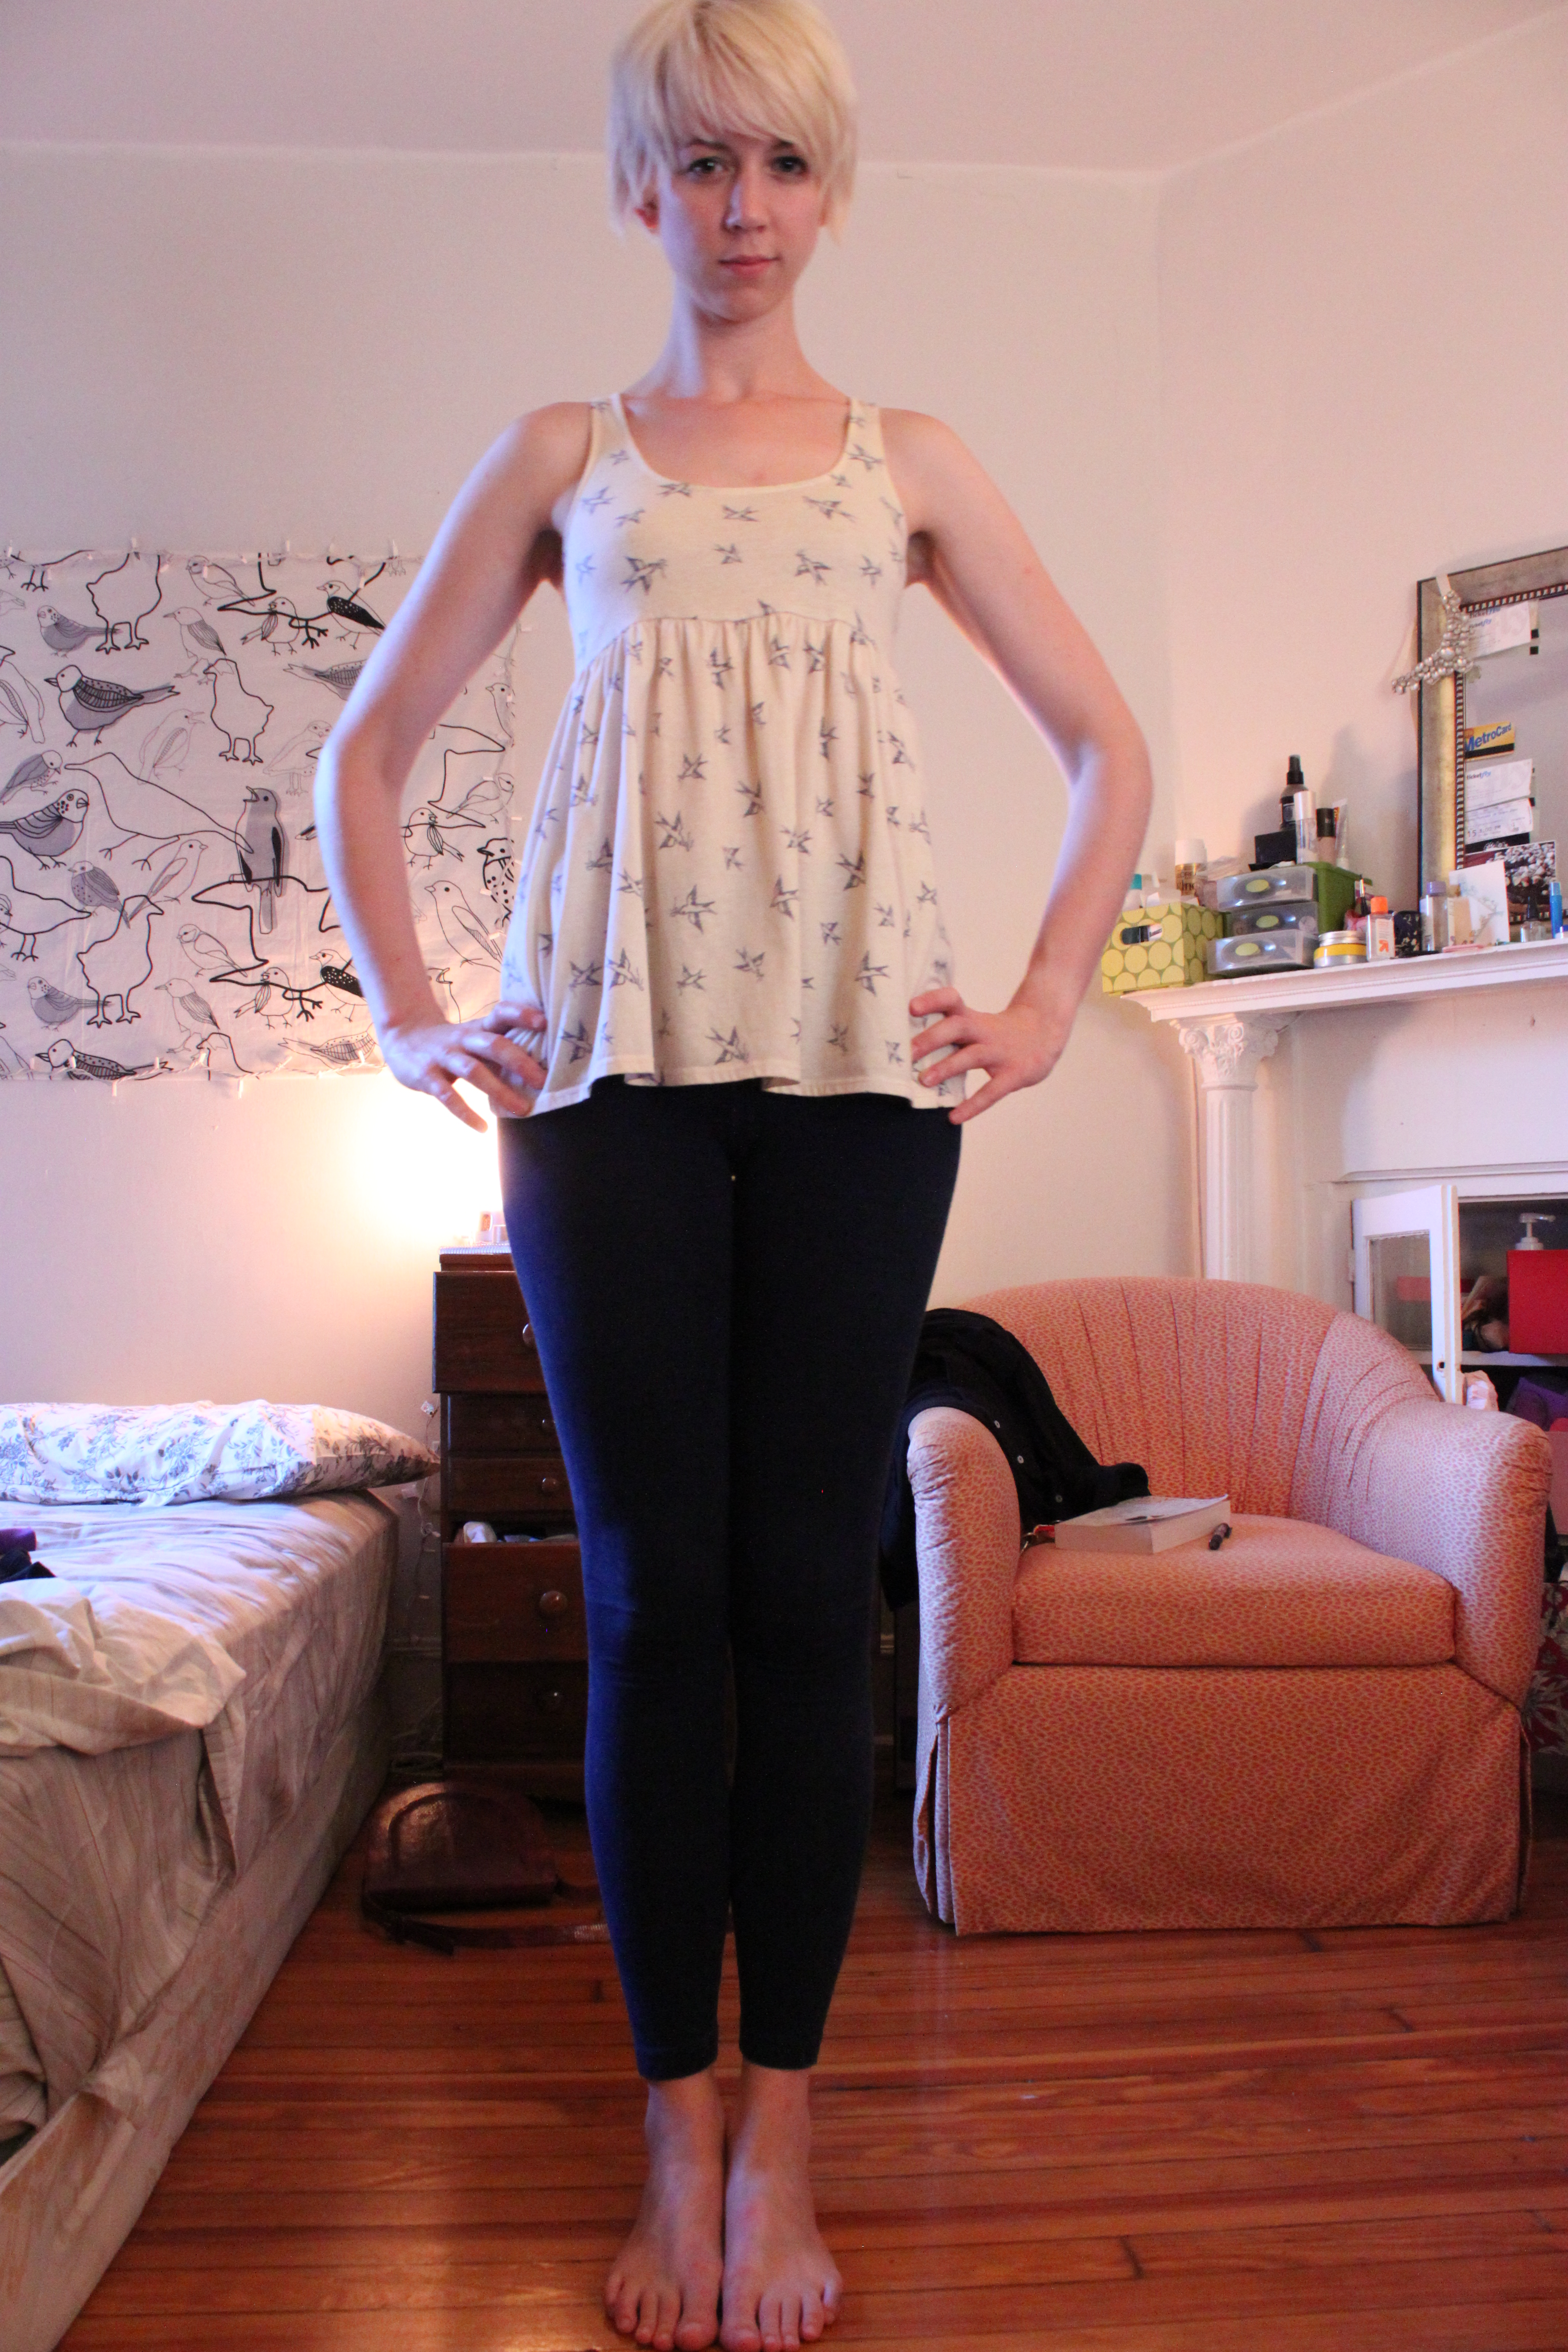 leggings aren't pants | thelongleggedstyleblogger